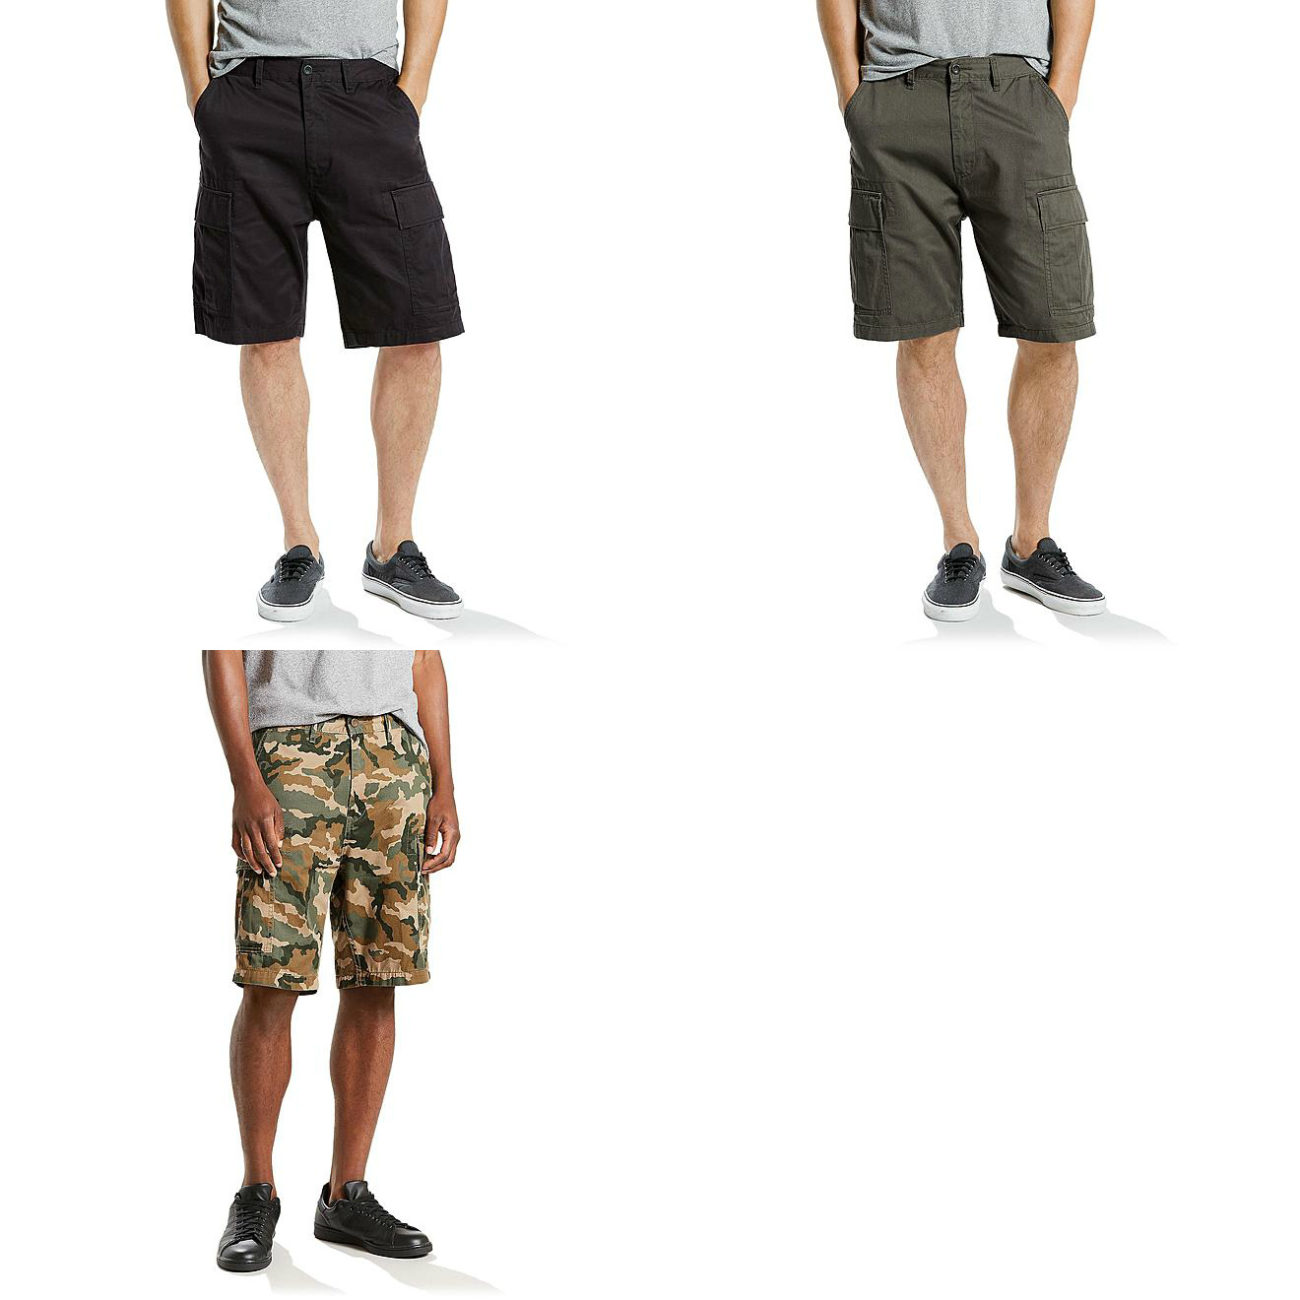 Sears – Levi's Men's Carrier Cargo Shorts Only $24.99 Through 09/02/17 (Reg $50.00) + Free Store Pickup